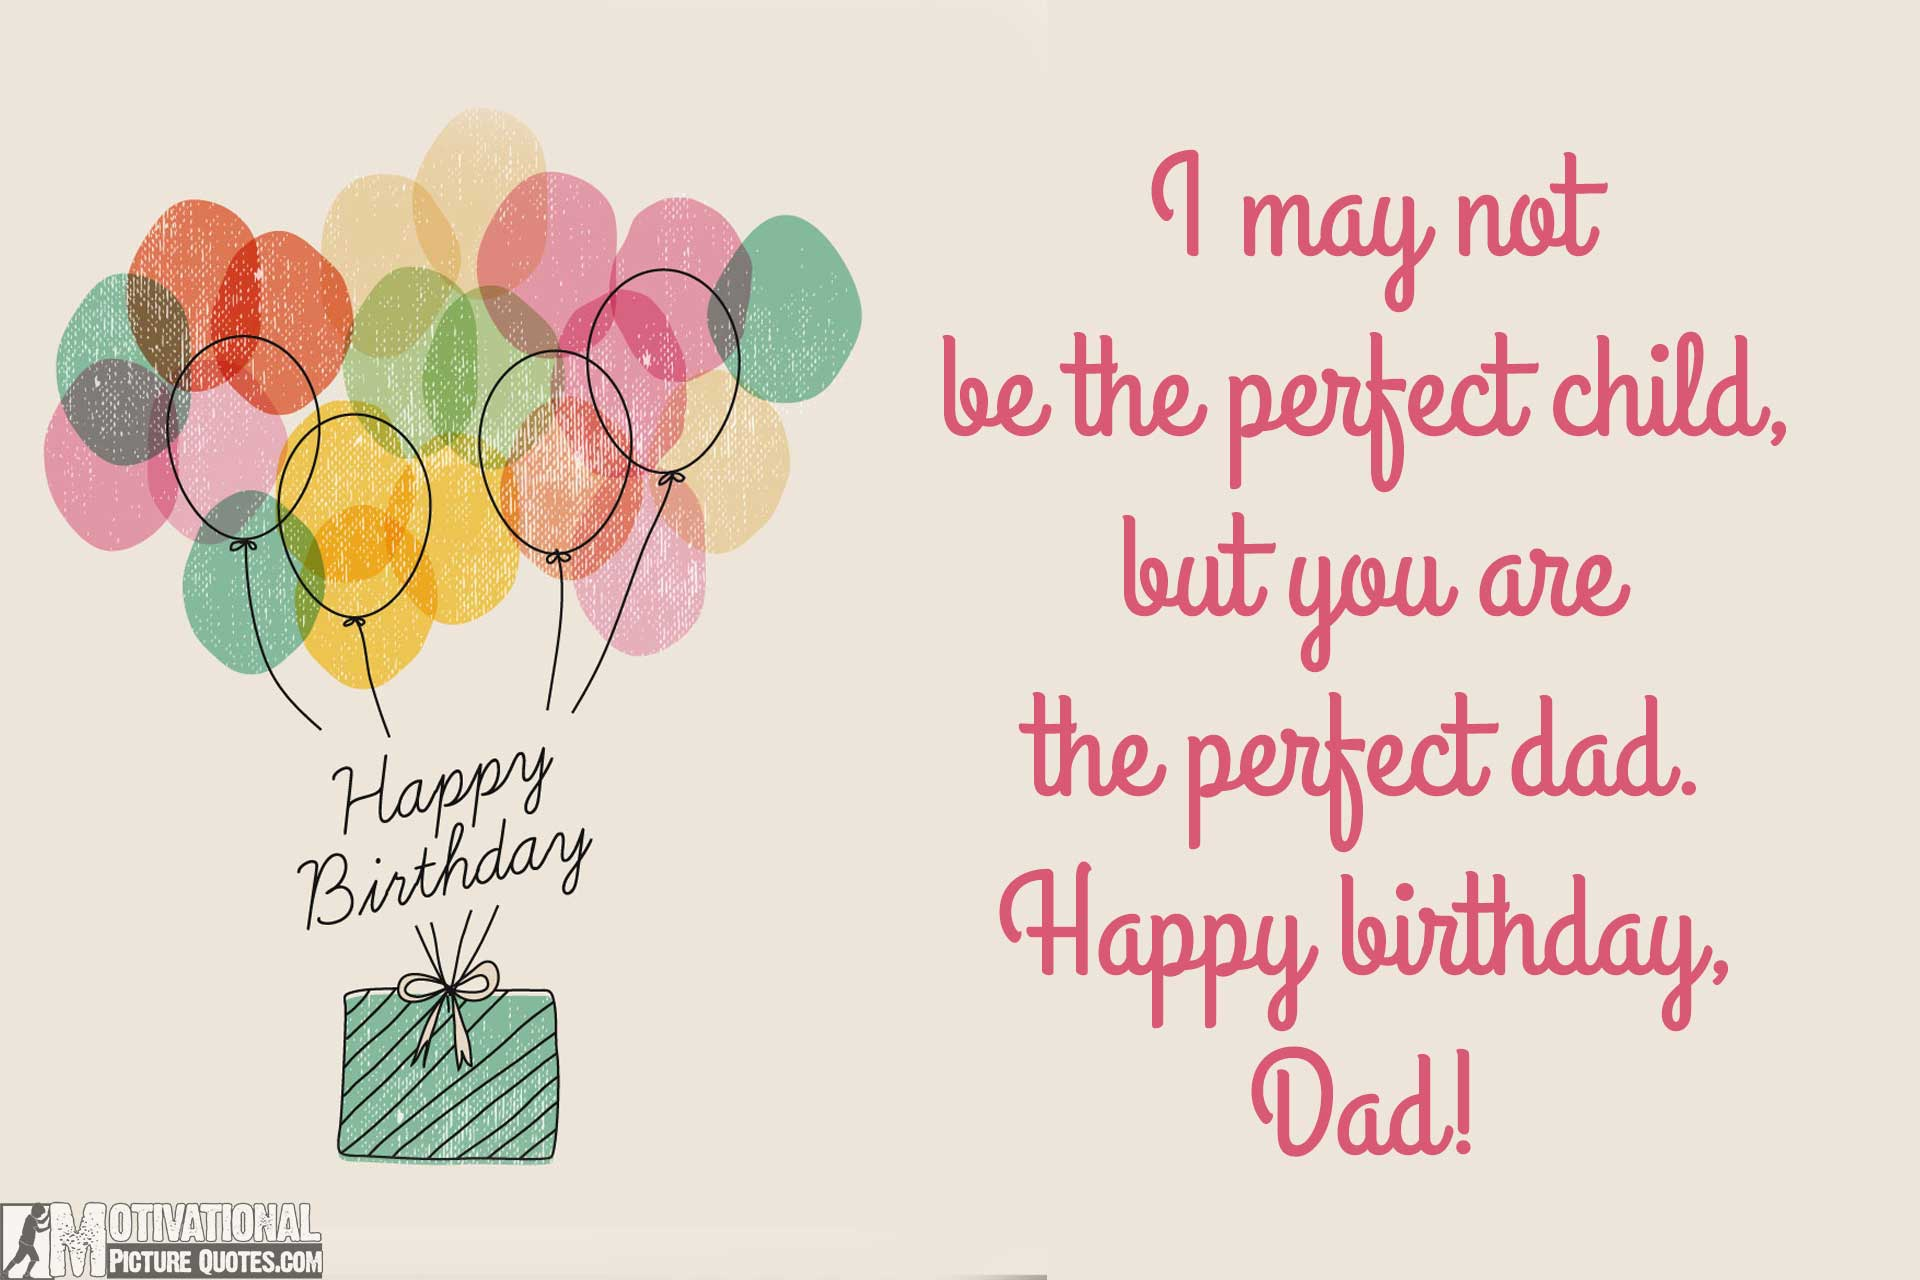 35 Inspirational Birthday Quotes Images – Birthday Card Messages for Dad